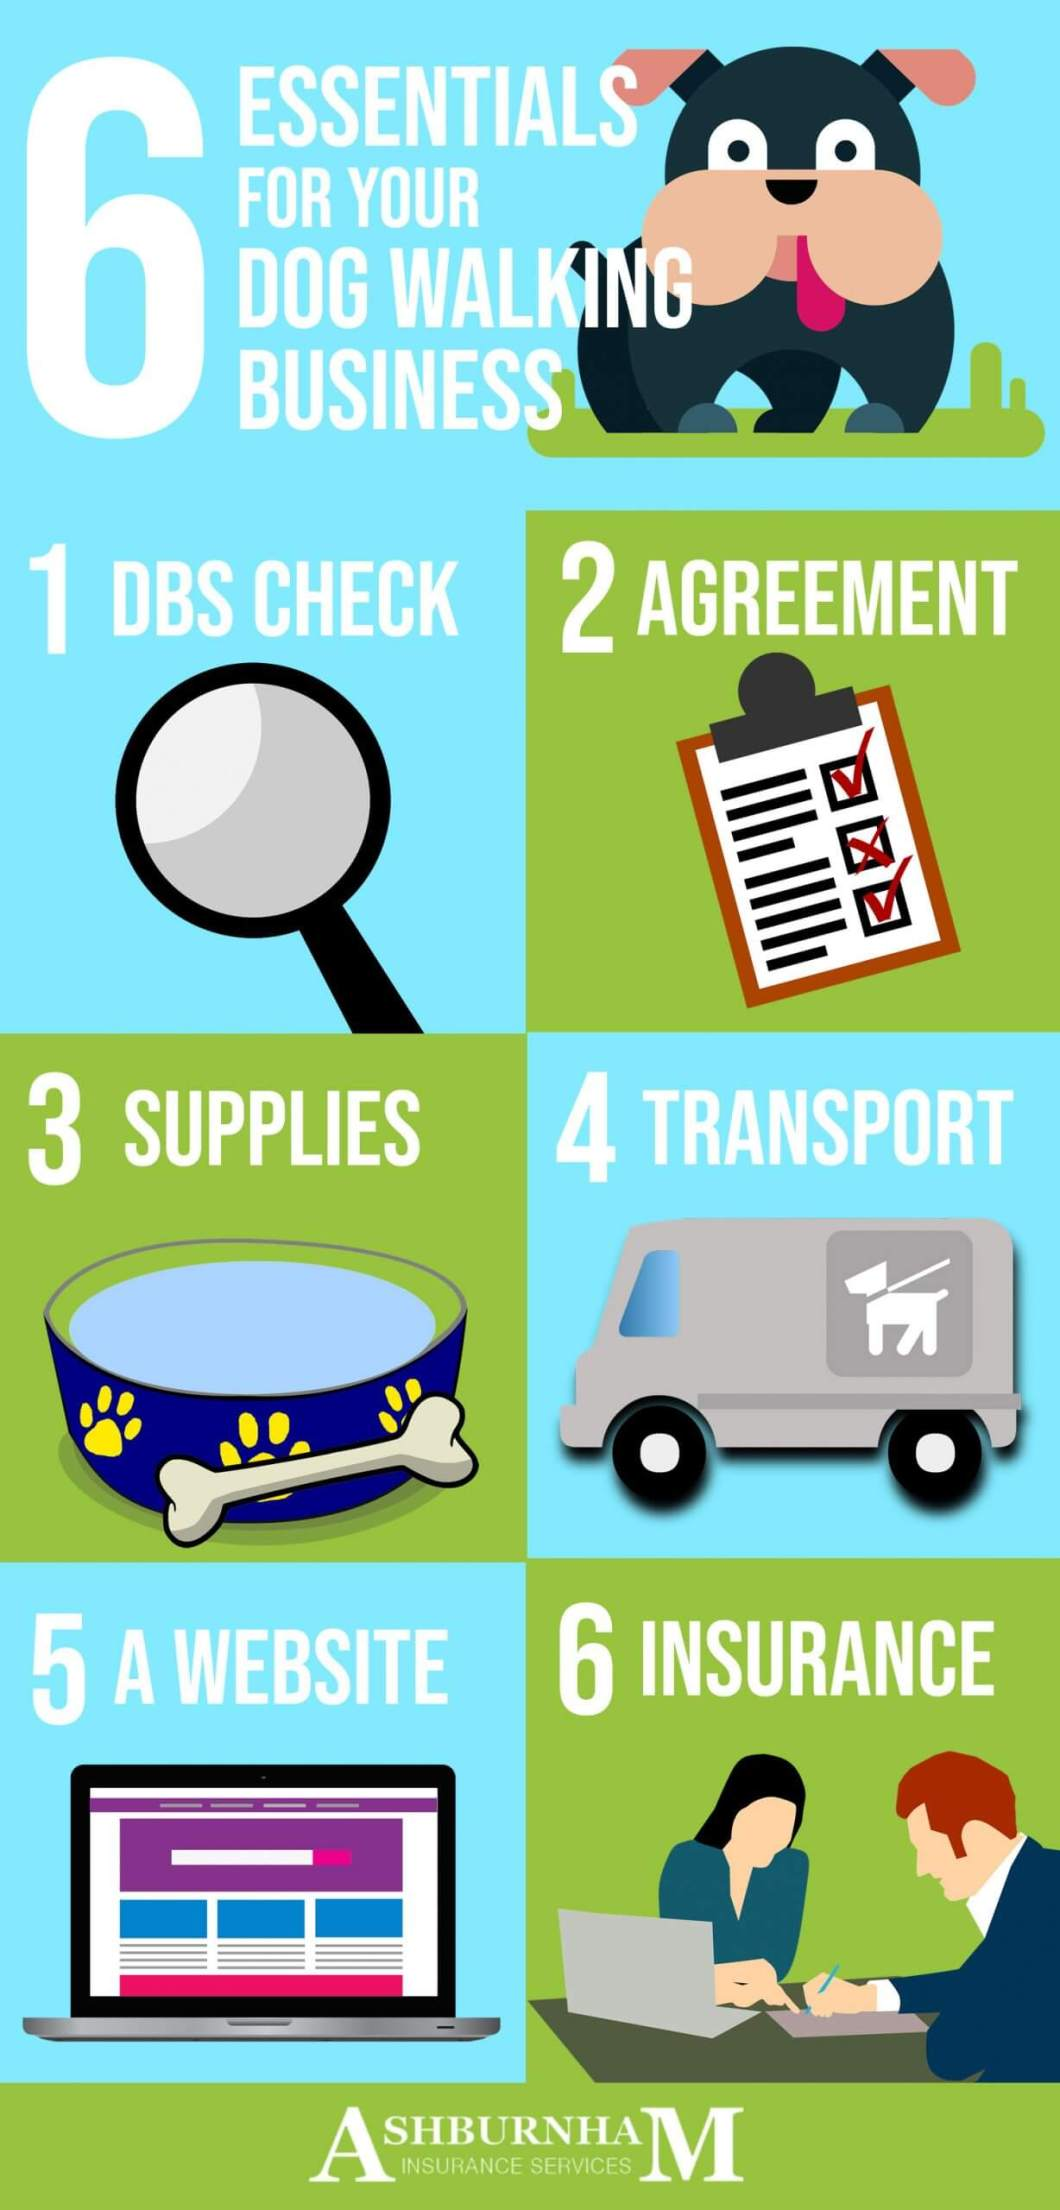 6 Essentials For Your Dog Walking Business Infographic